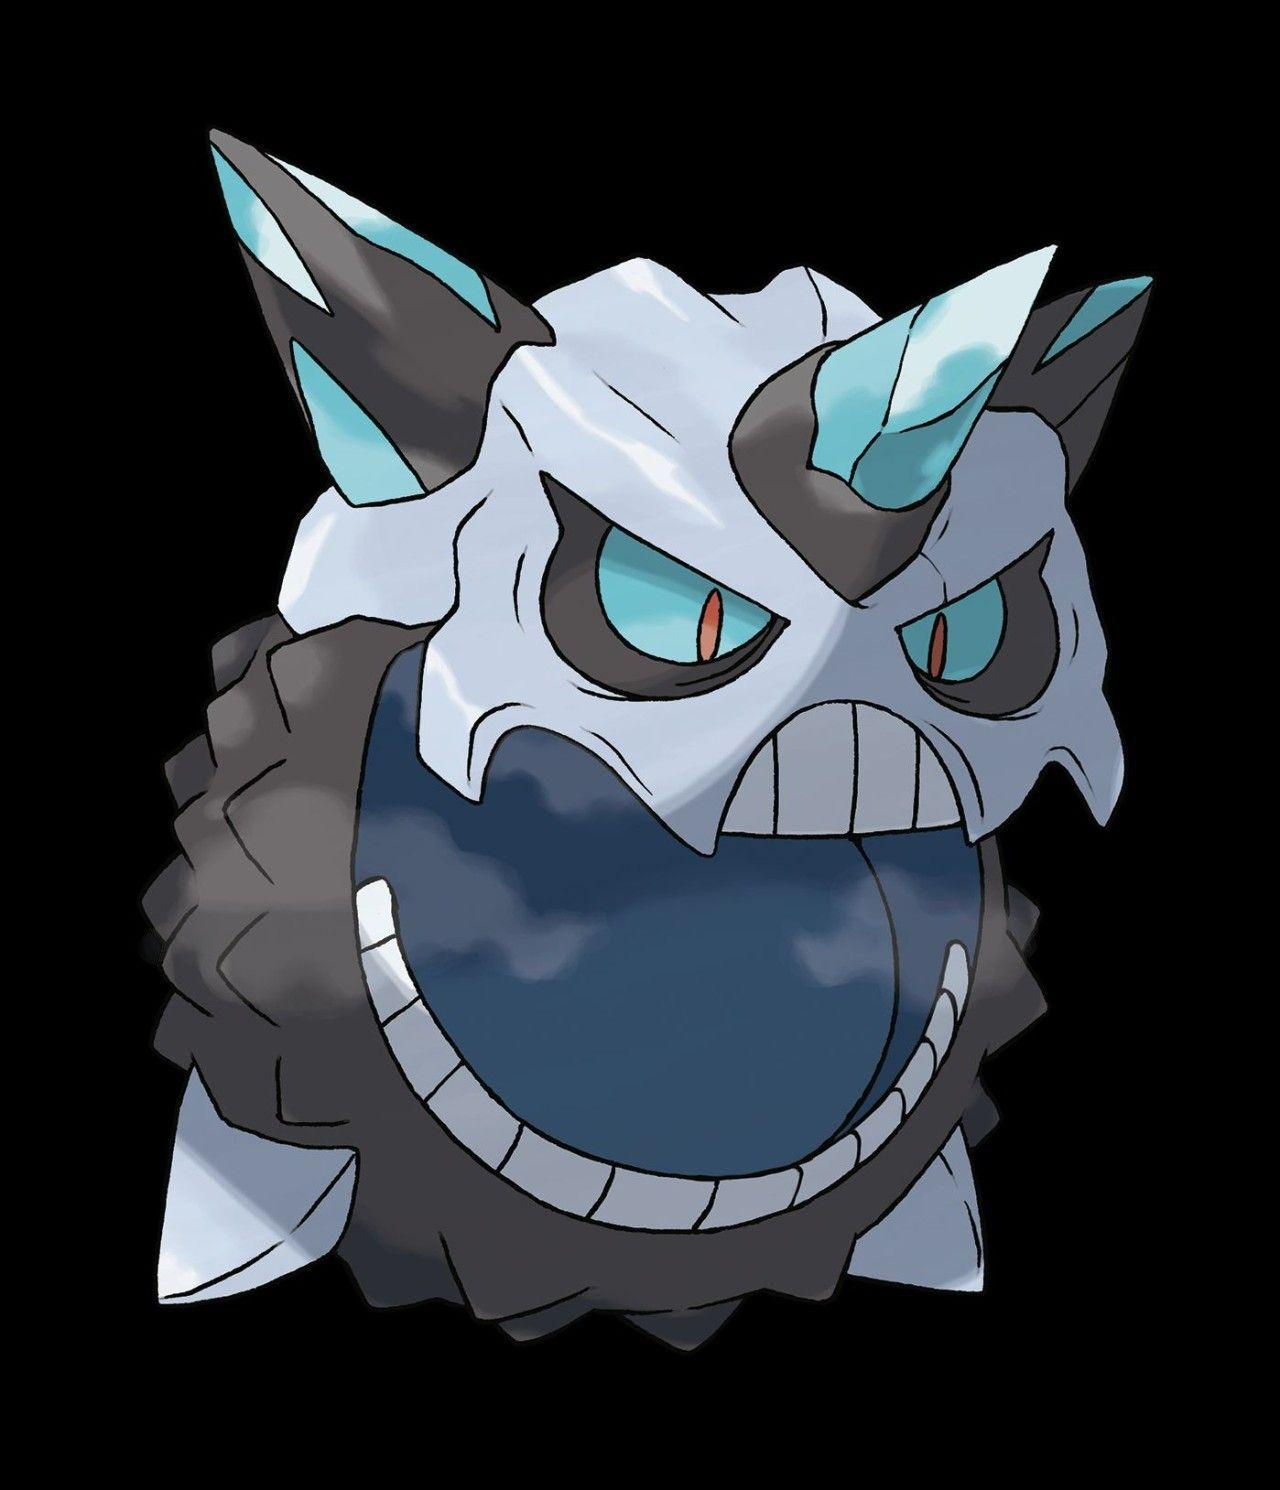 Mega Steelix and Glalie Confirmed for Pokémon Omega Ruby and Alpha ...